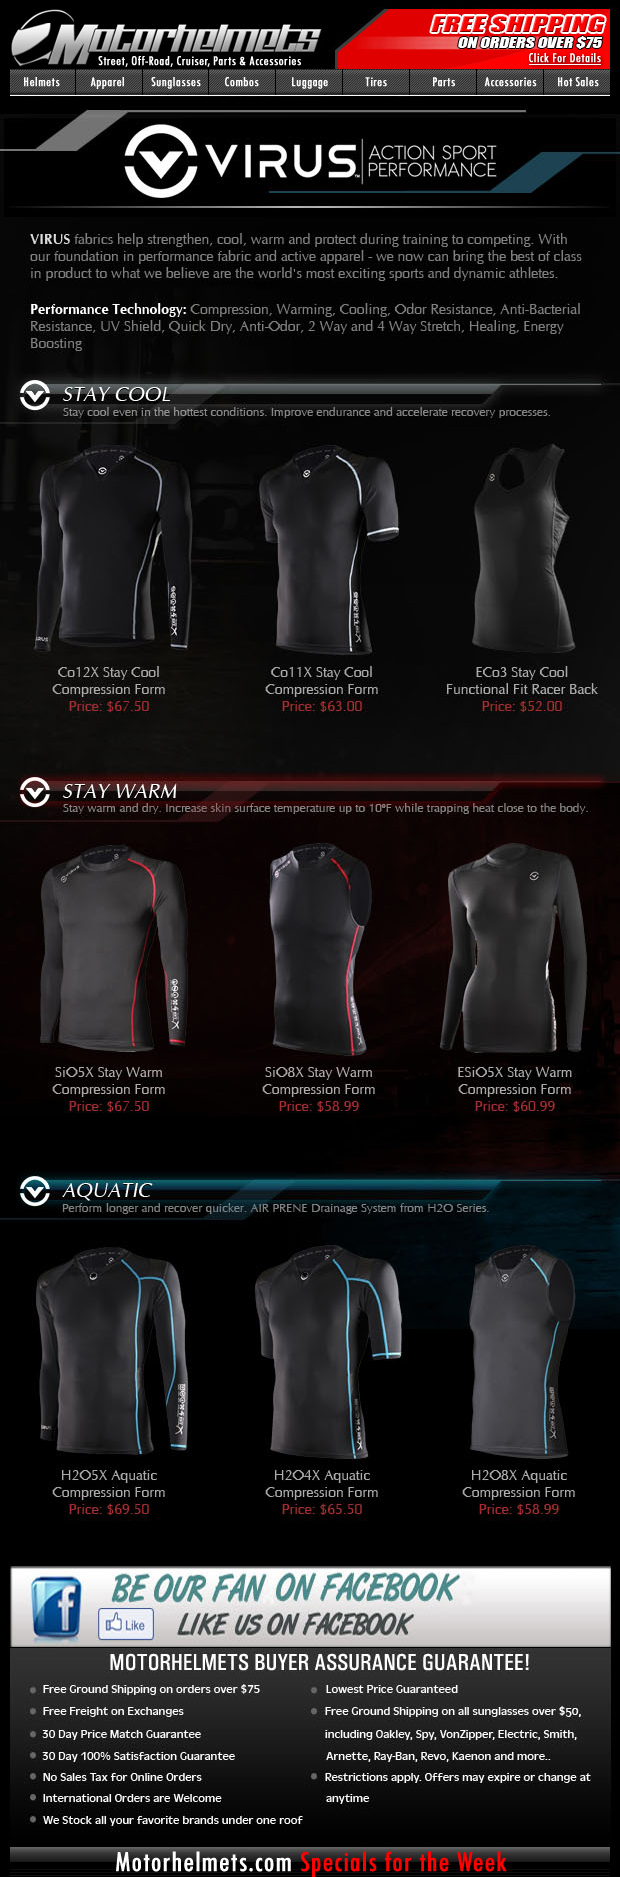 NEW ARRIVALS: VIRUS Action Sport Performance Gear!